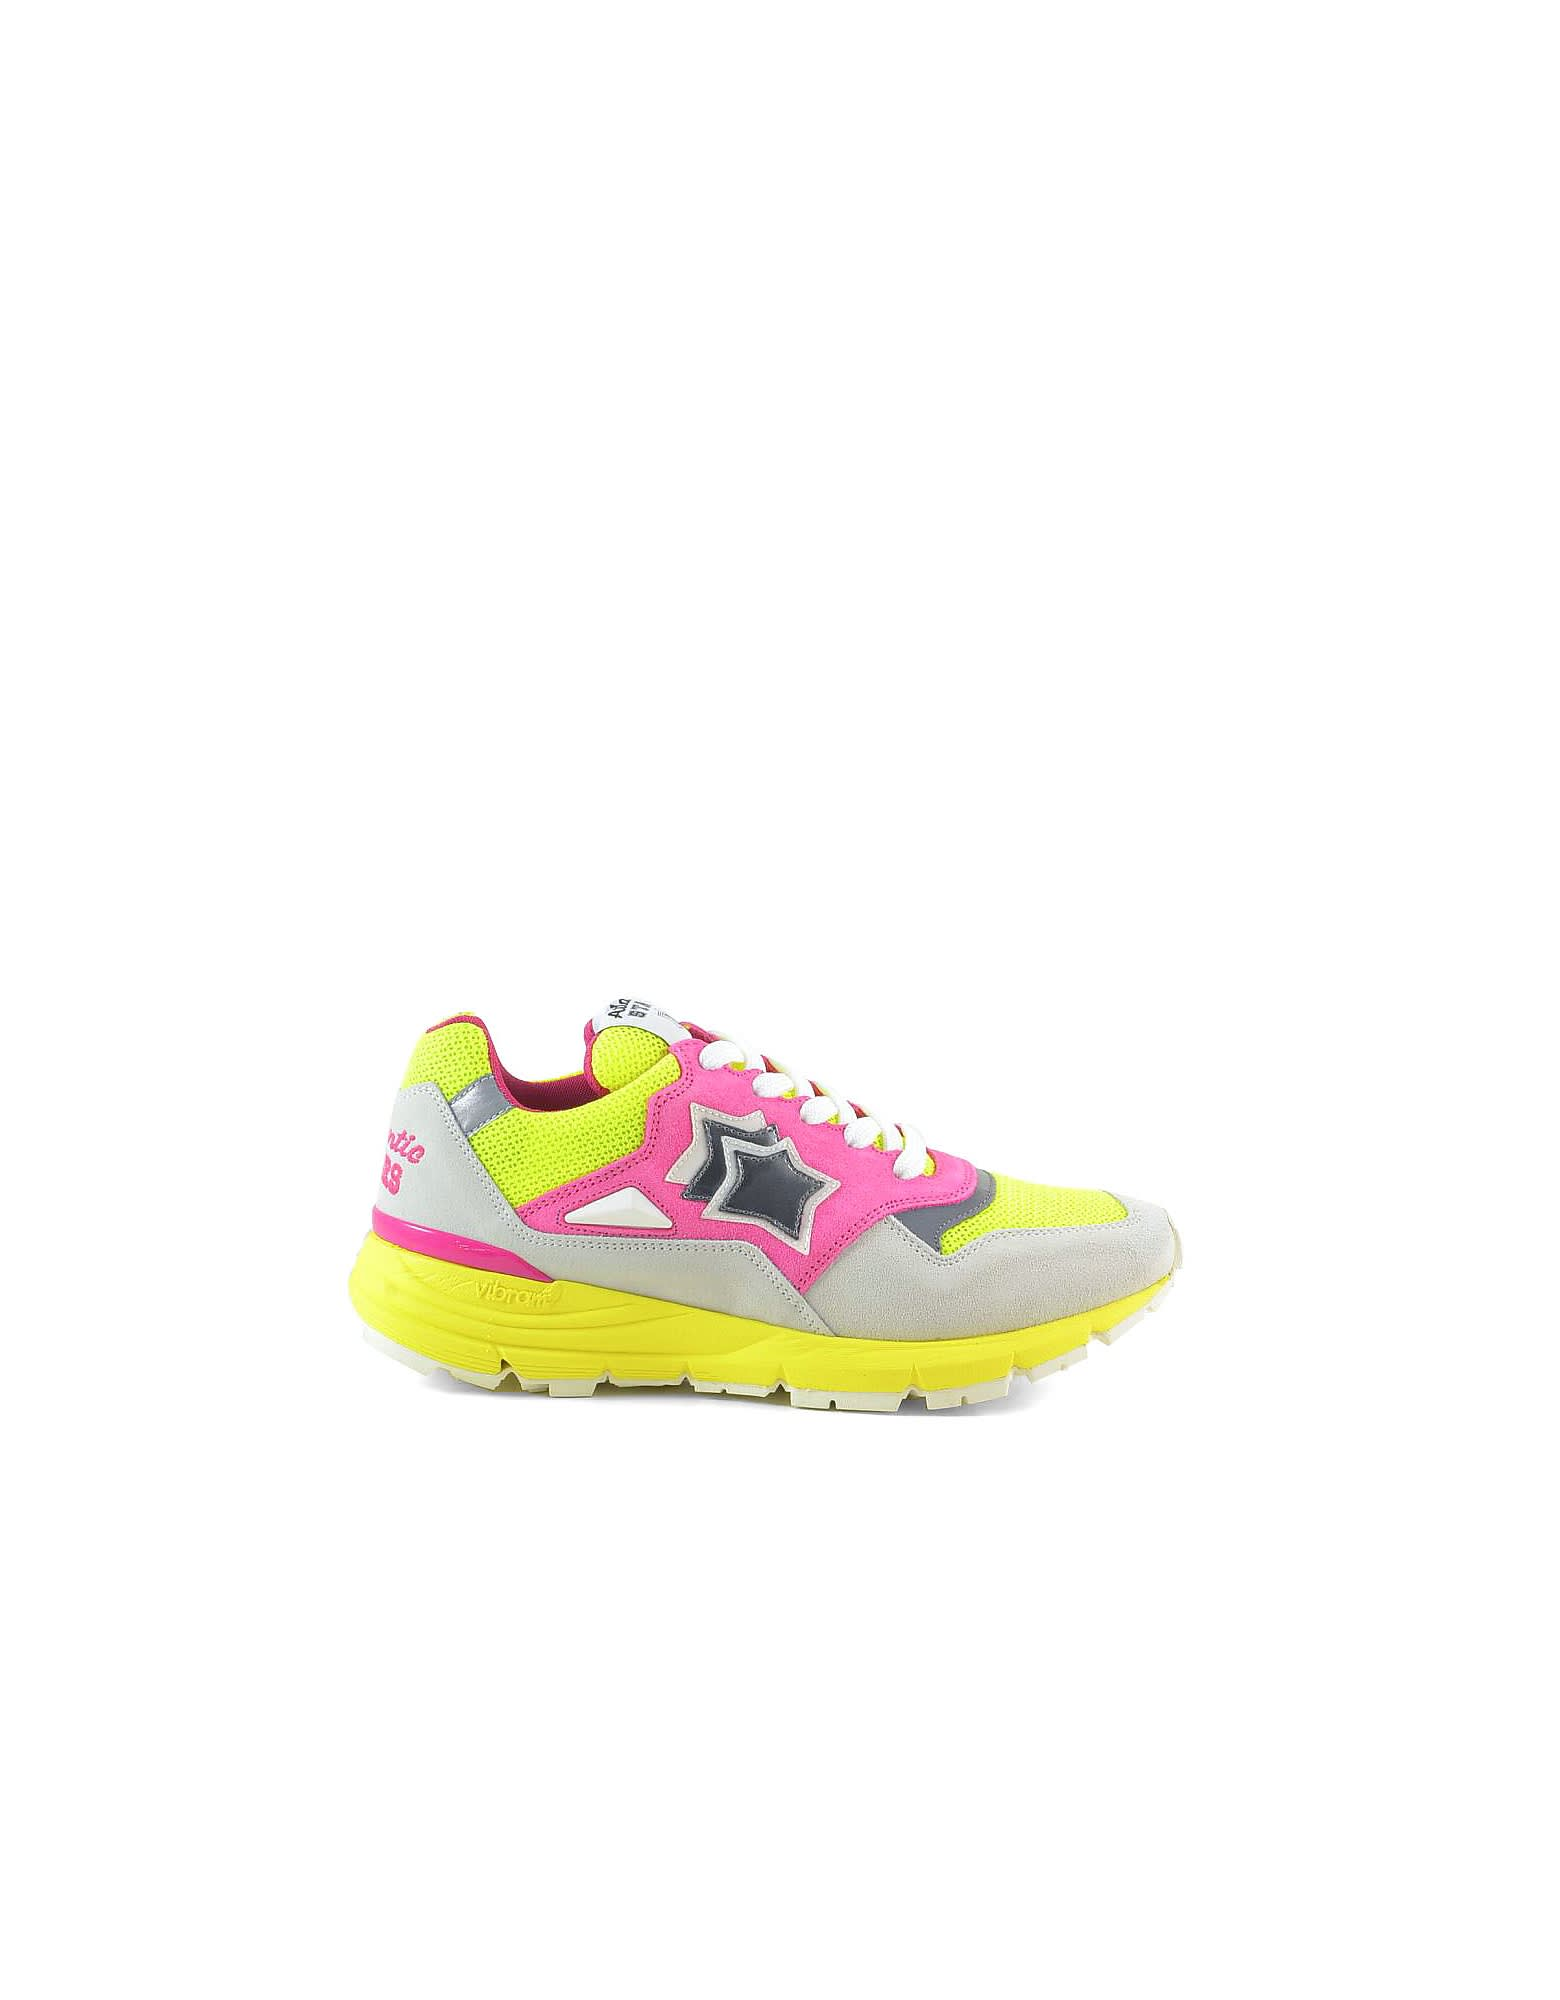 Pink And Gray Suede Sneakers W/yellow Rubber Sole